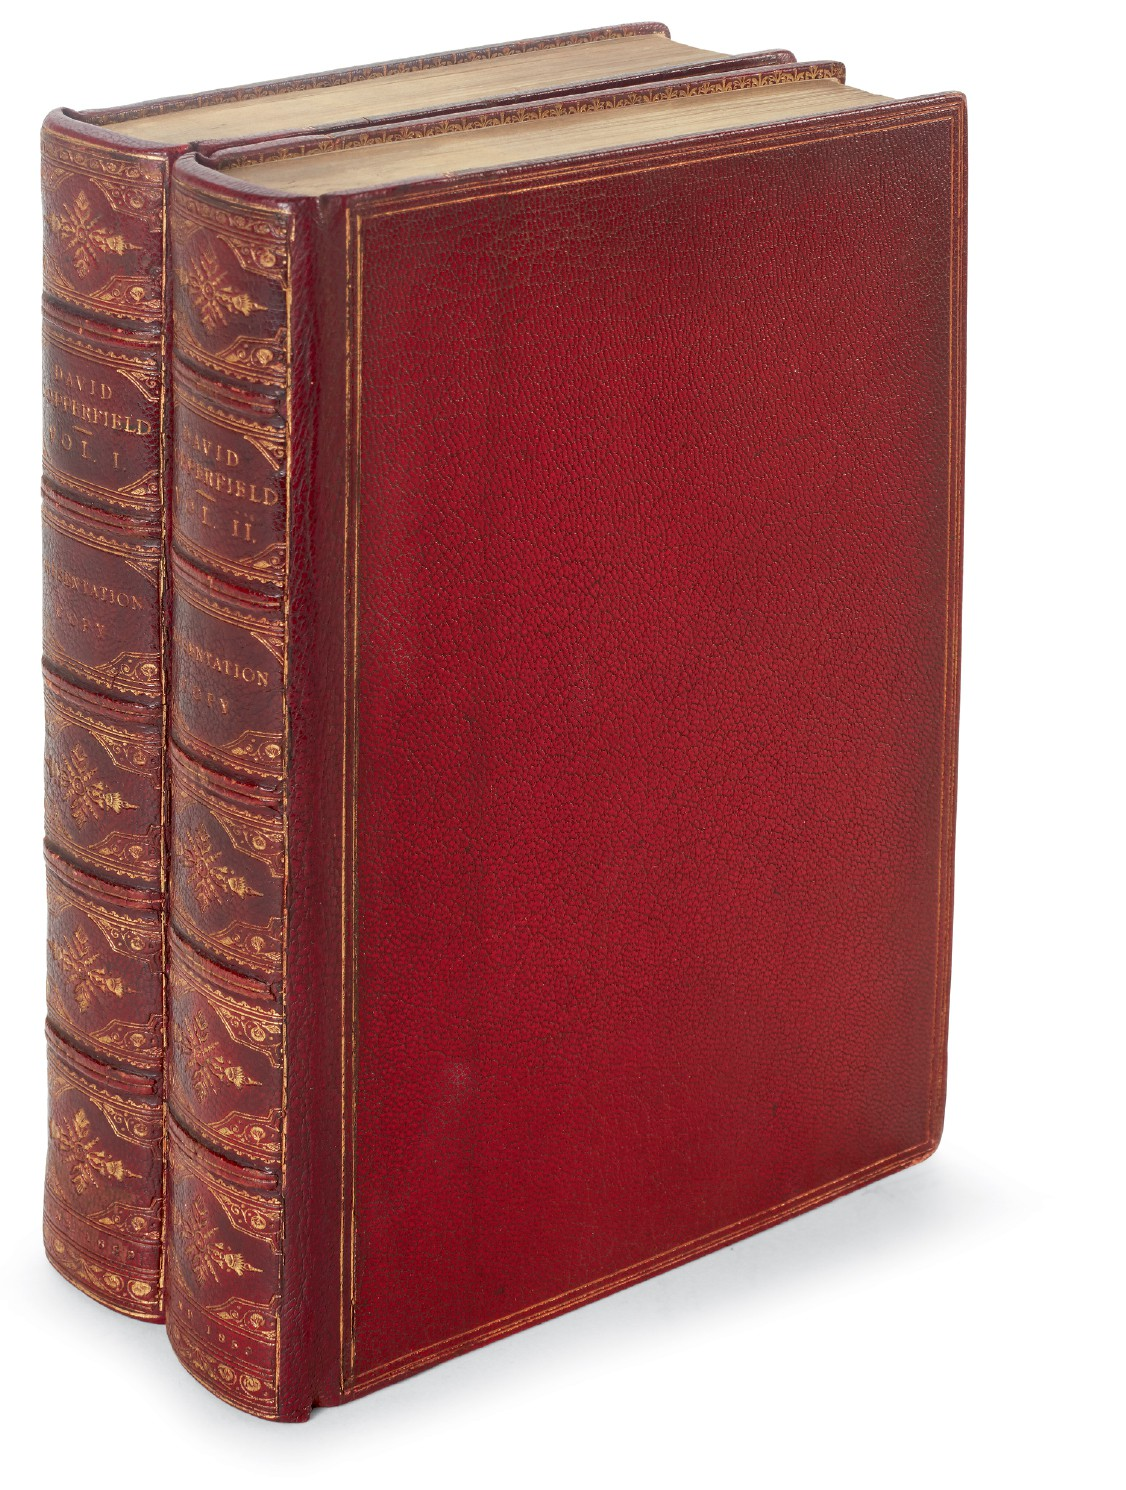 Dickens, David Copperfield, 1859, presentation copy inscribed to Reverend Goldhawk, with letter